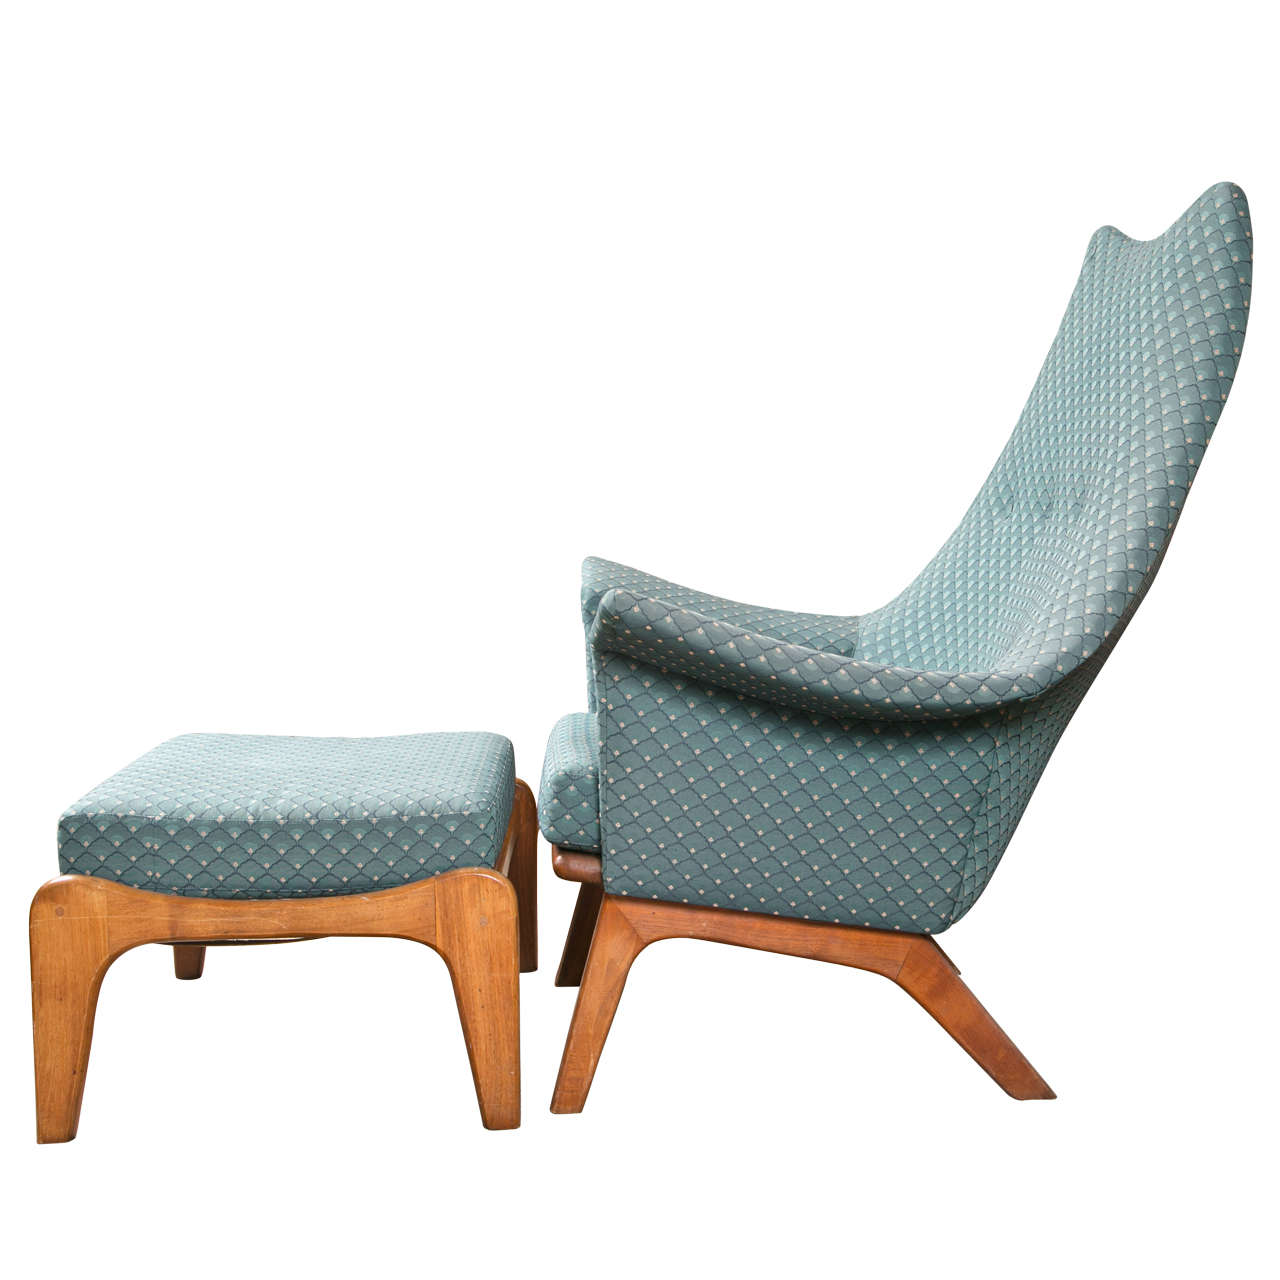 Image of: Danish Lounge Chair Picture